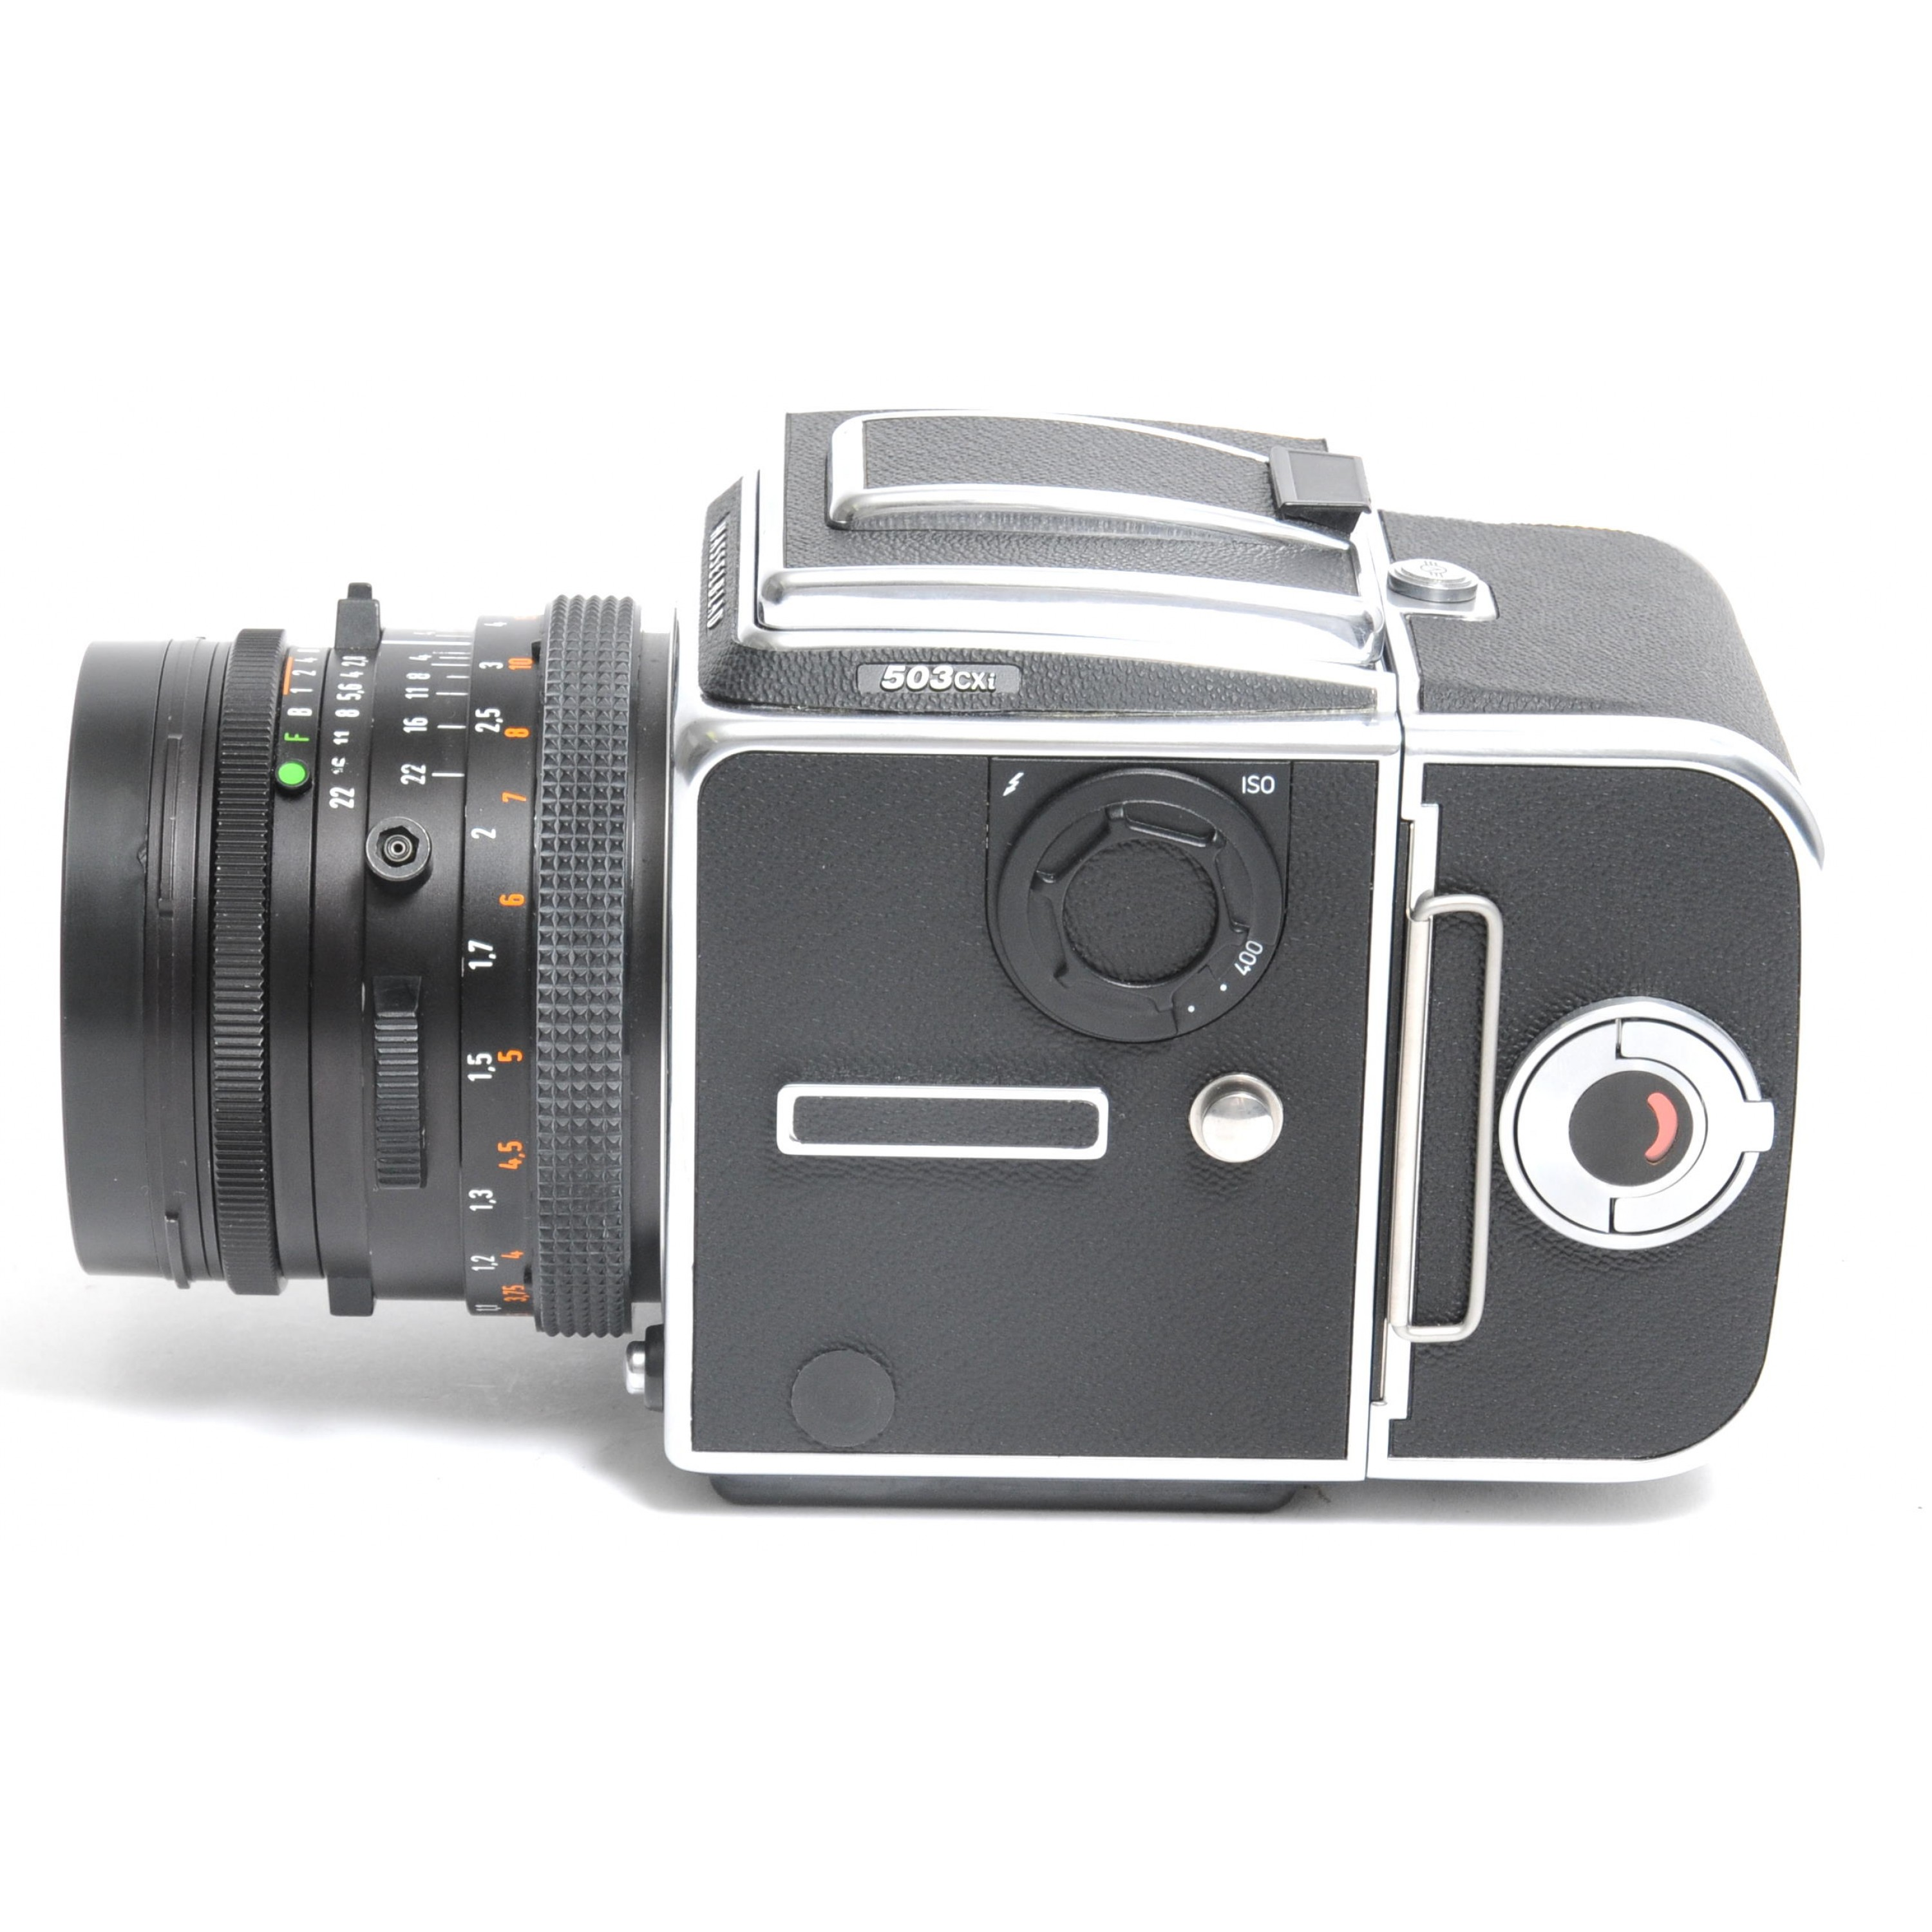 Hasselblad  503 CXi  Camera  Carl Zeiss Planar 2.8 / 80mm T*  with A12 Magazin